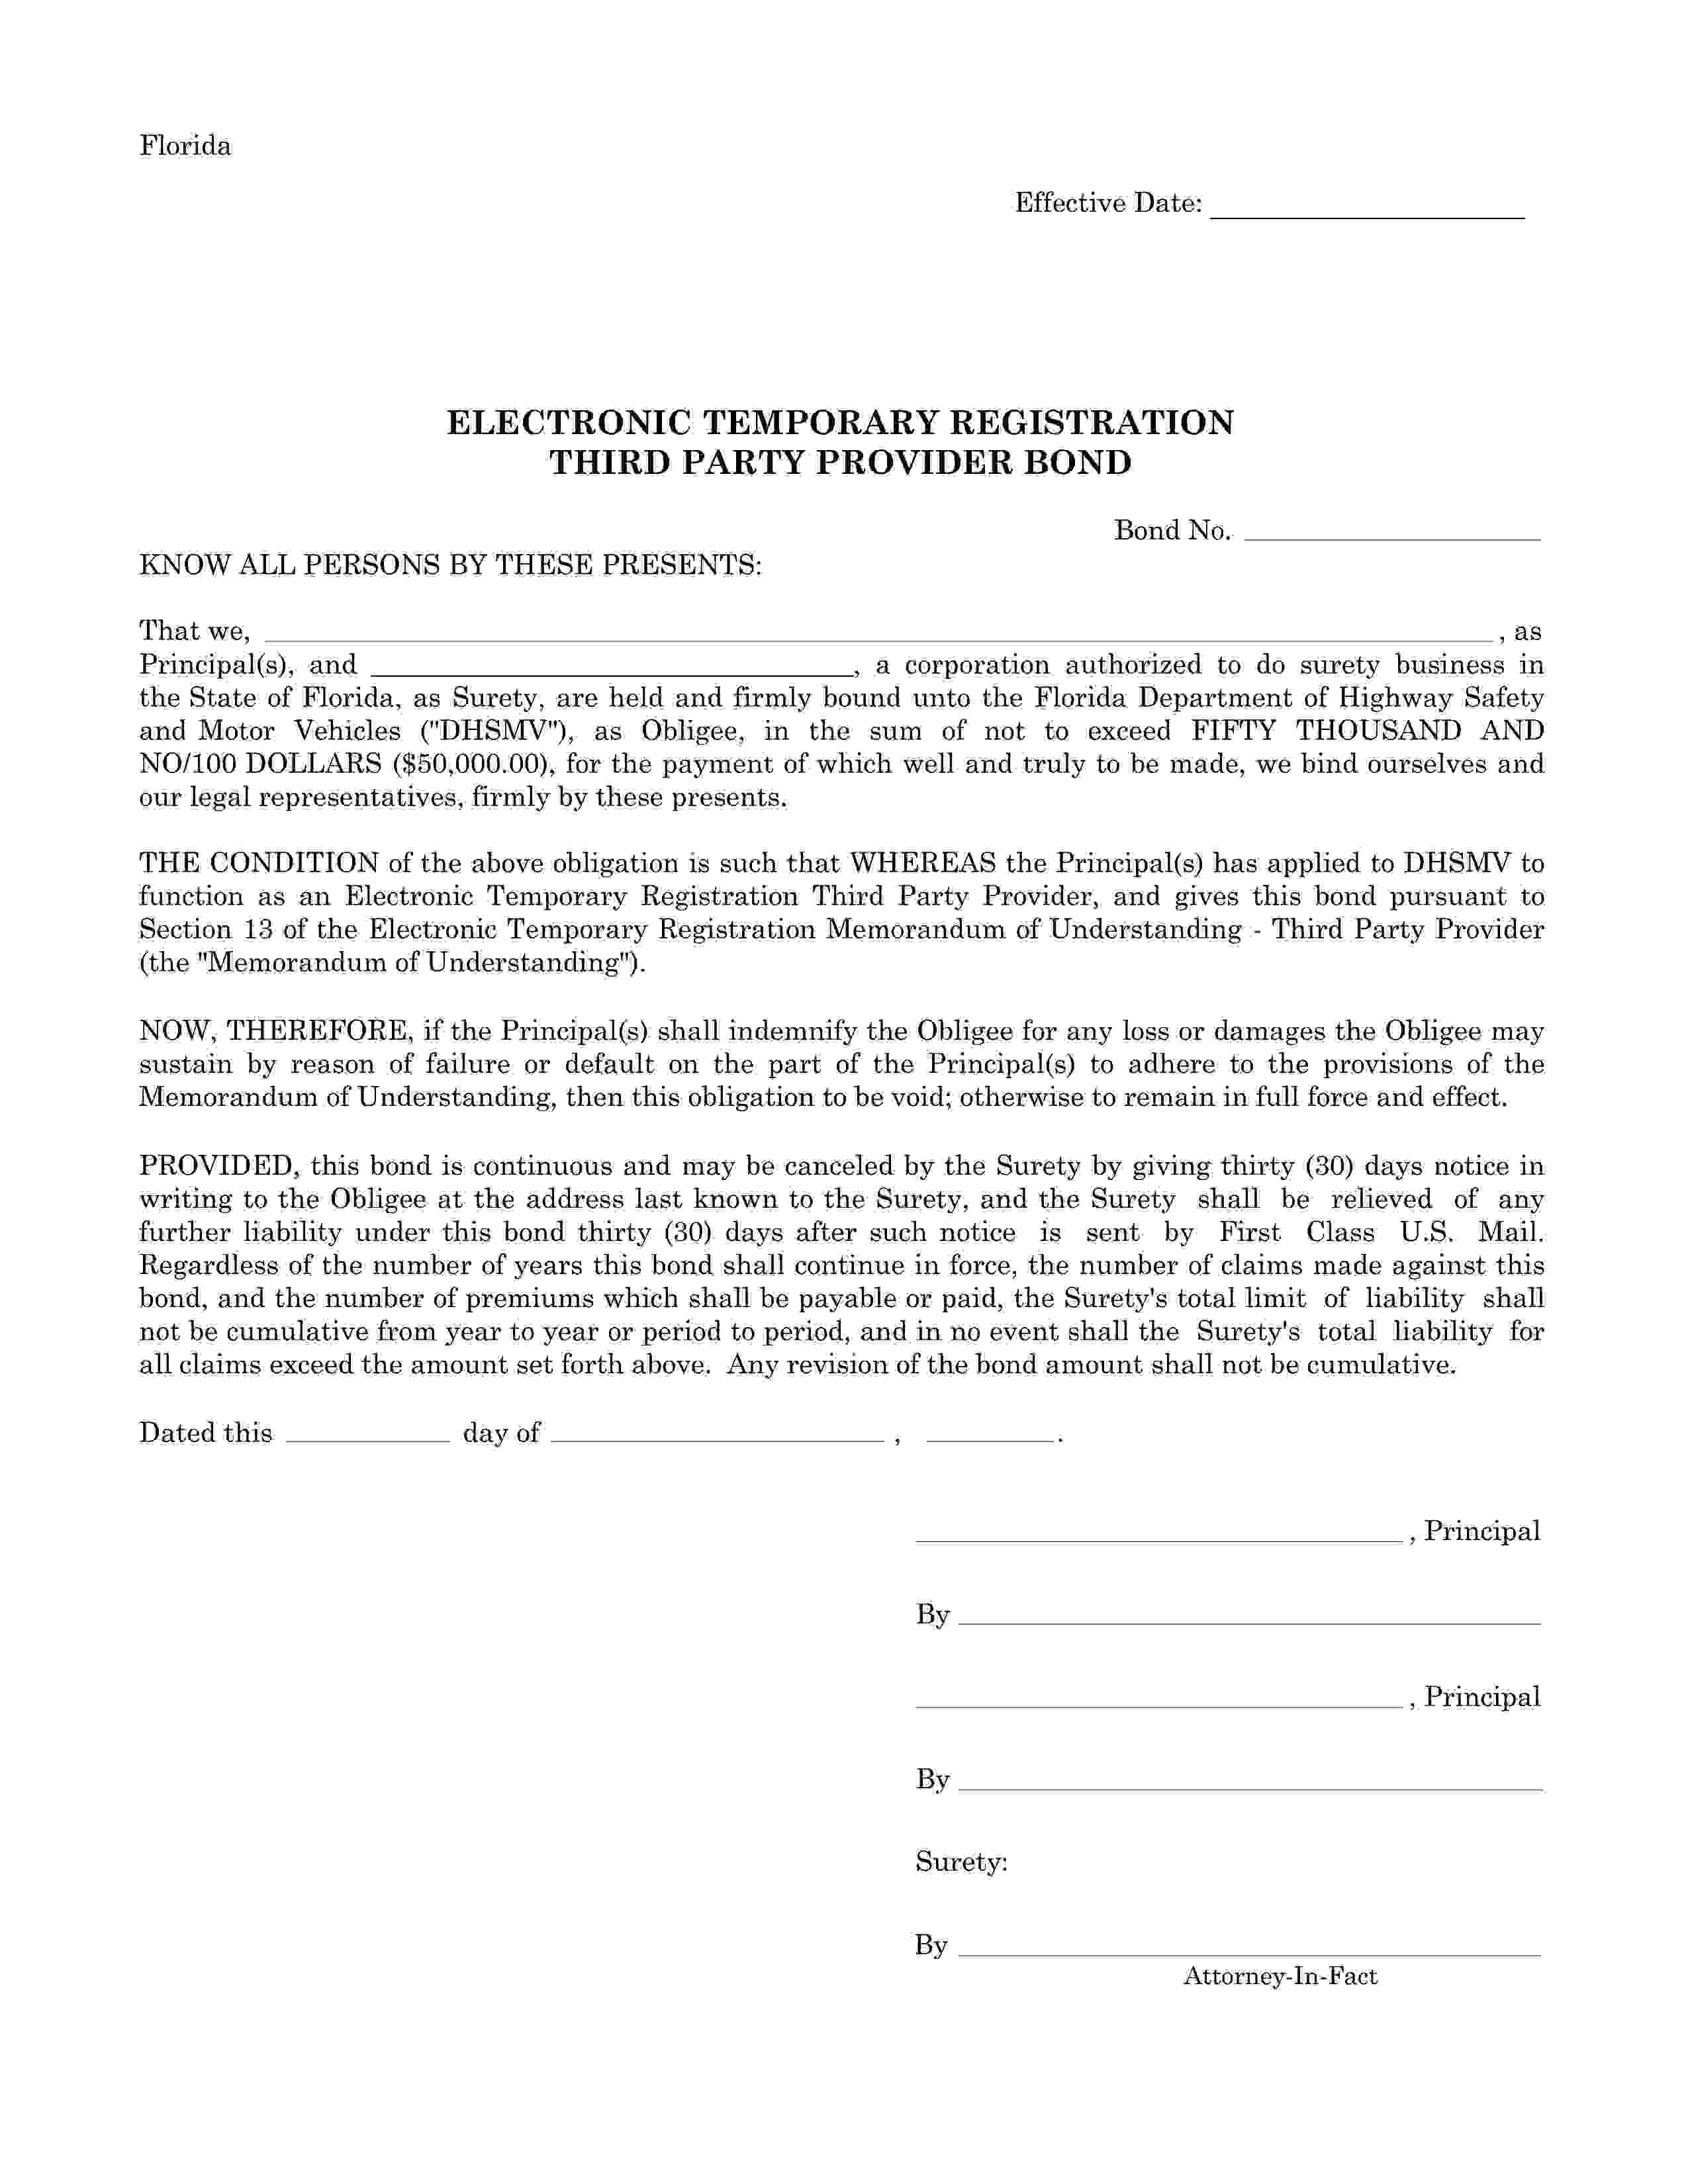 Florida Department Of Highway Safety And Motor Vehicles Electronic Temporary Registration (ETR) Third Party Provider Bond sample image